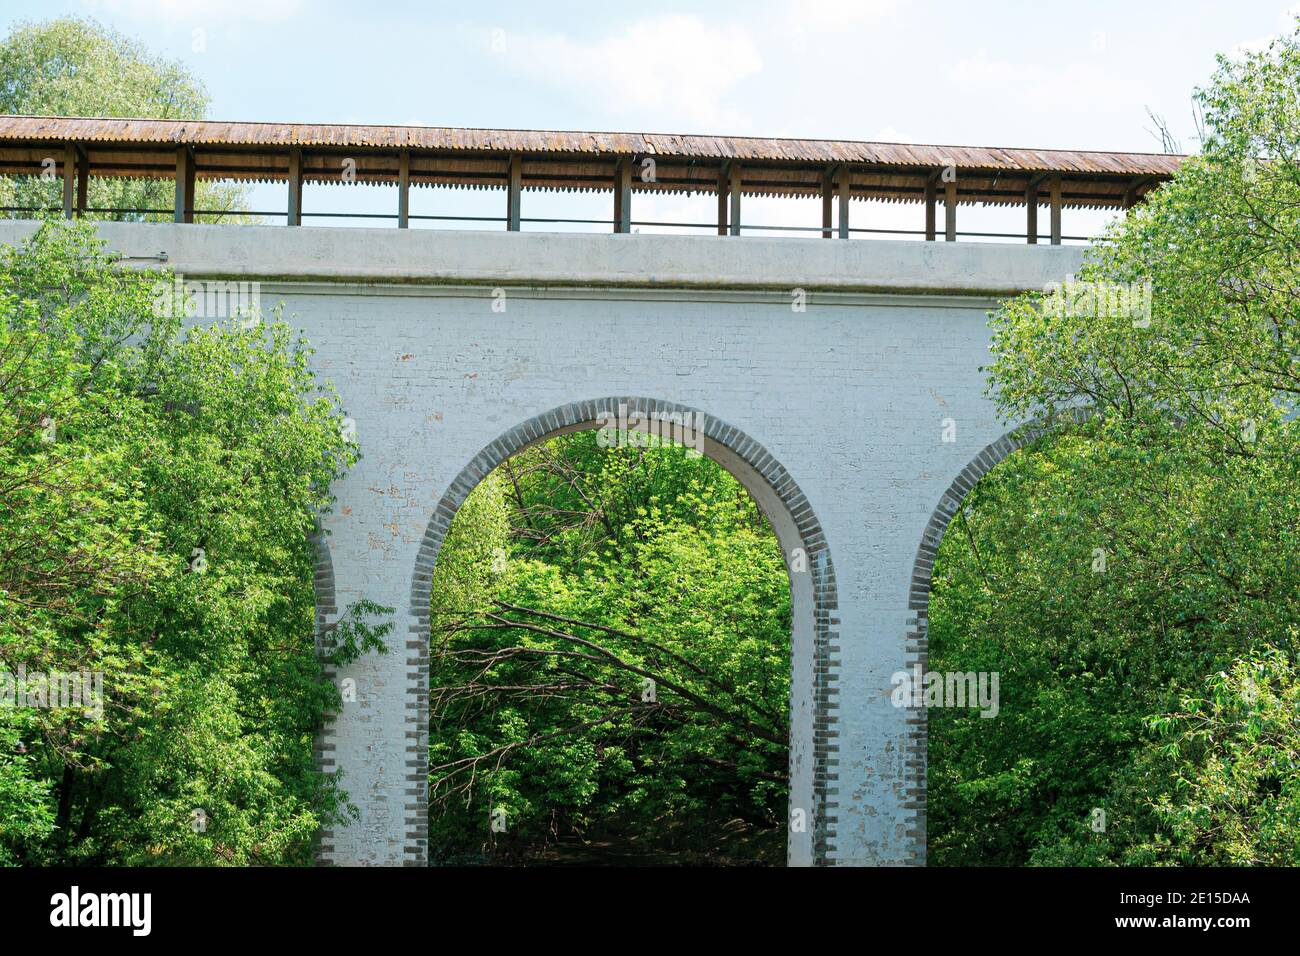 Moscow, Russia - June 9, 2020: Waterworks aqueduct in the Yauza River Valley in Moscow. Historical aqueduct of the 18th century made of white stone in Stock Photo